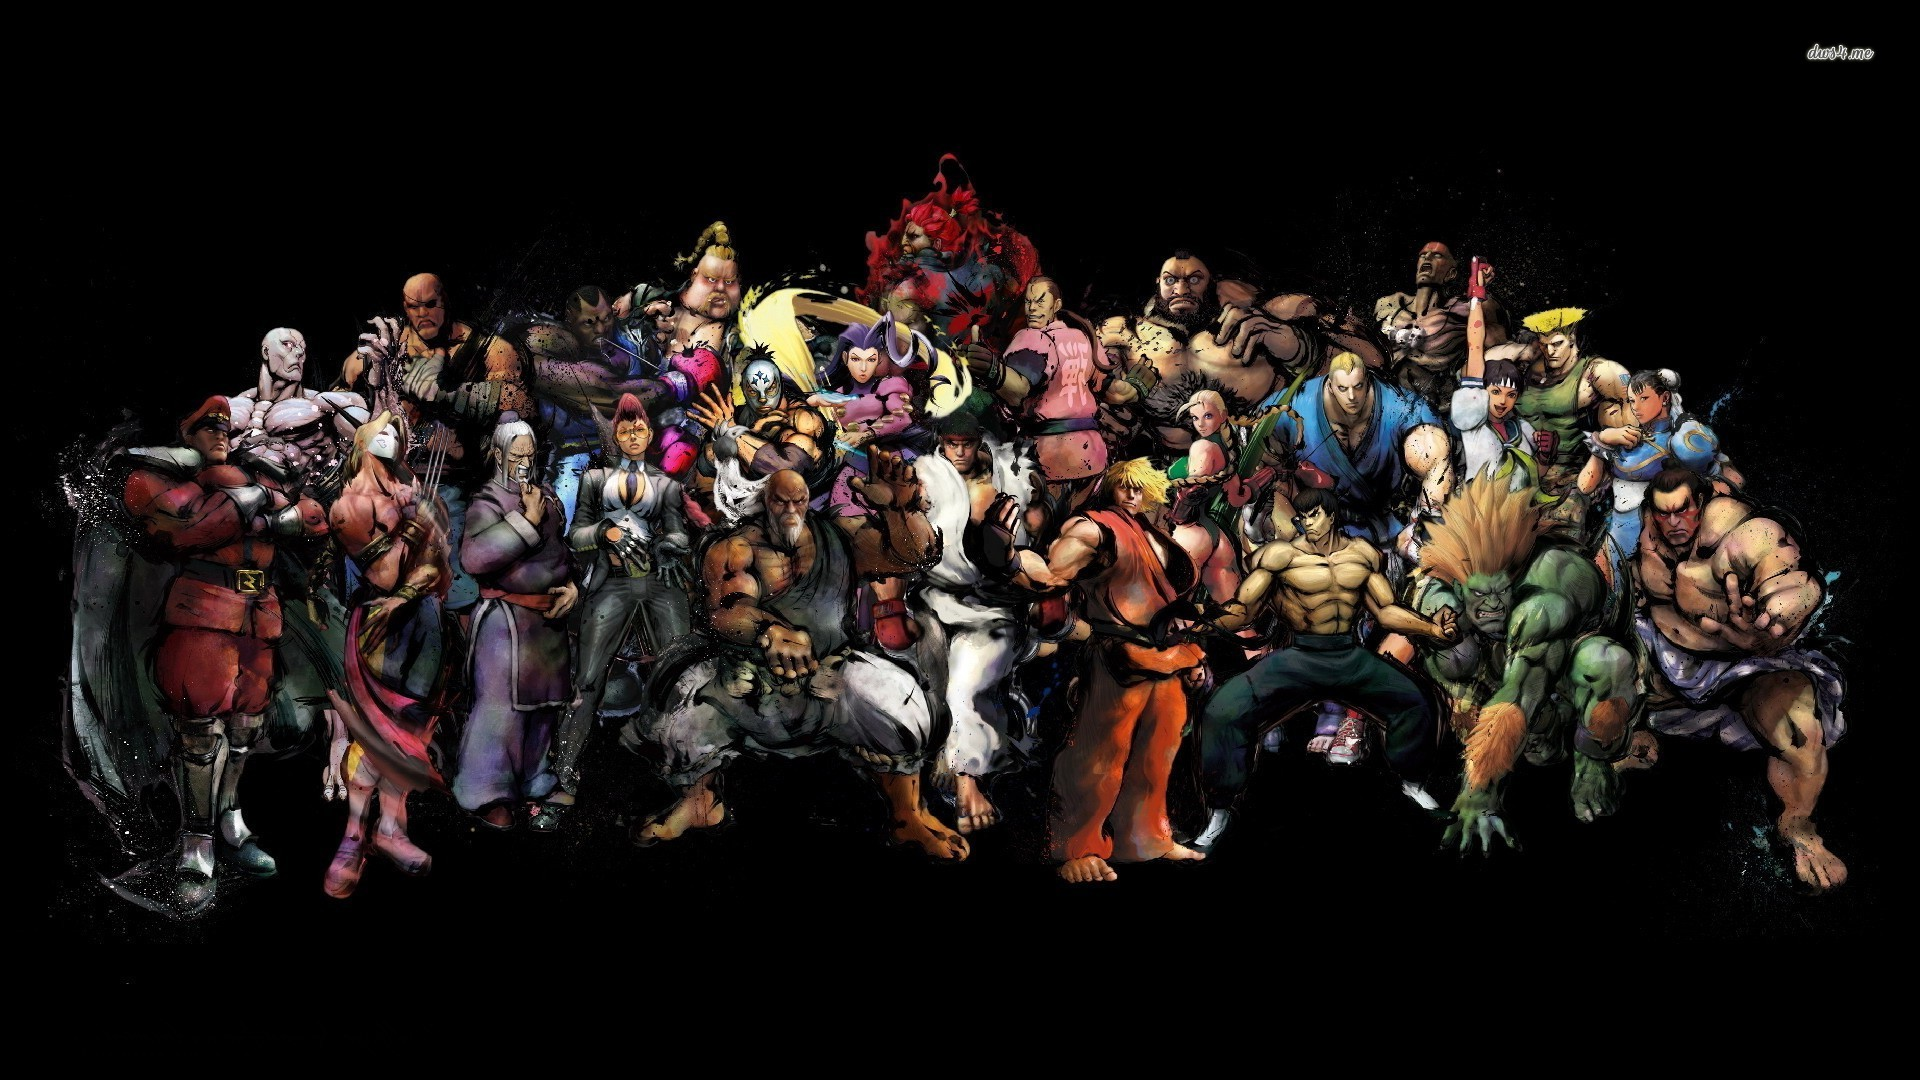 Free Download Games Super Street Fighter Iv Game 1920x1080